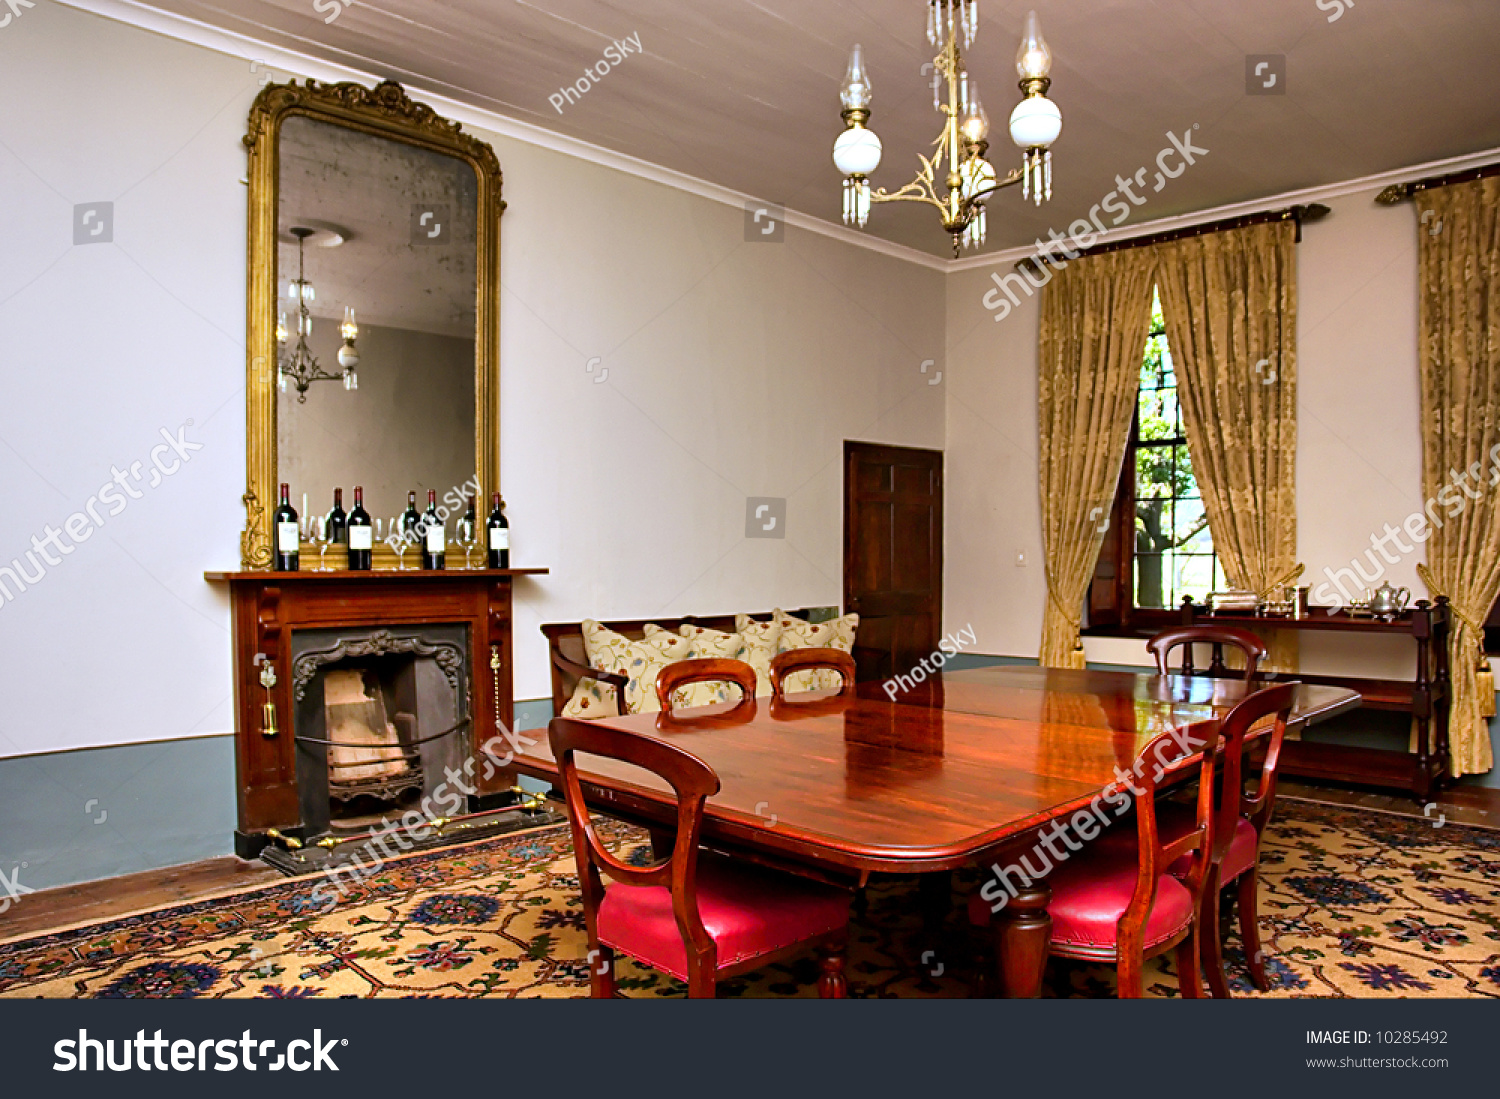 Antique dining room with big table and chairs. Shot in a wine farm between Stellenbosch & Antique Dining Room Big Table Chairs Stock Photo (Royalty Free ...